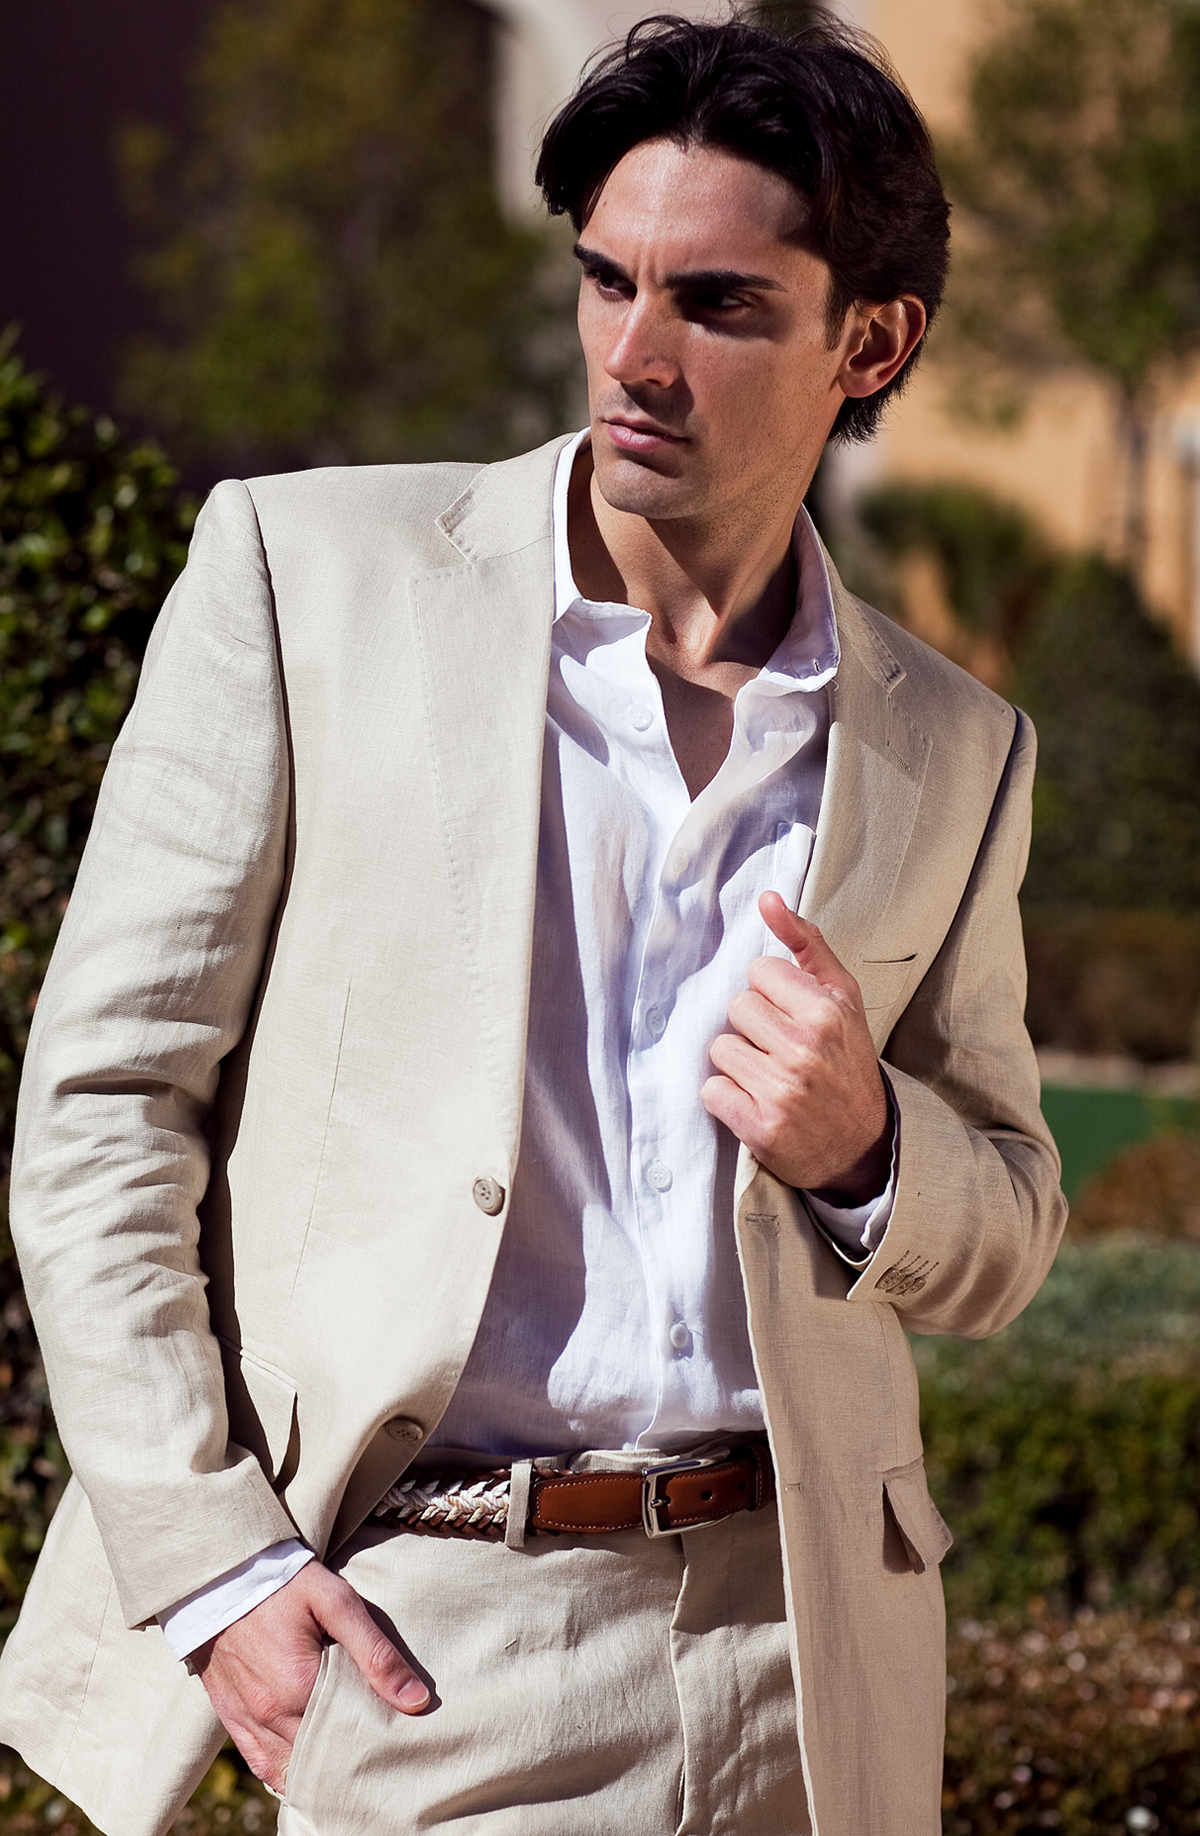 Linen Clothing - Linen Suits - Linen Shirts - Linen Pants - Resort ...